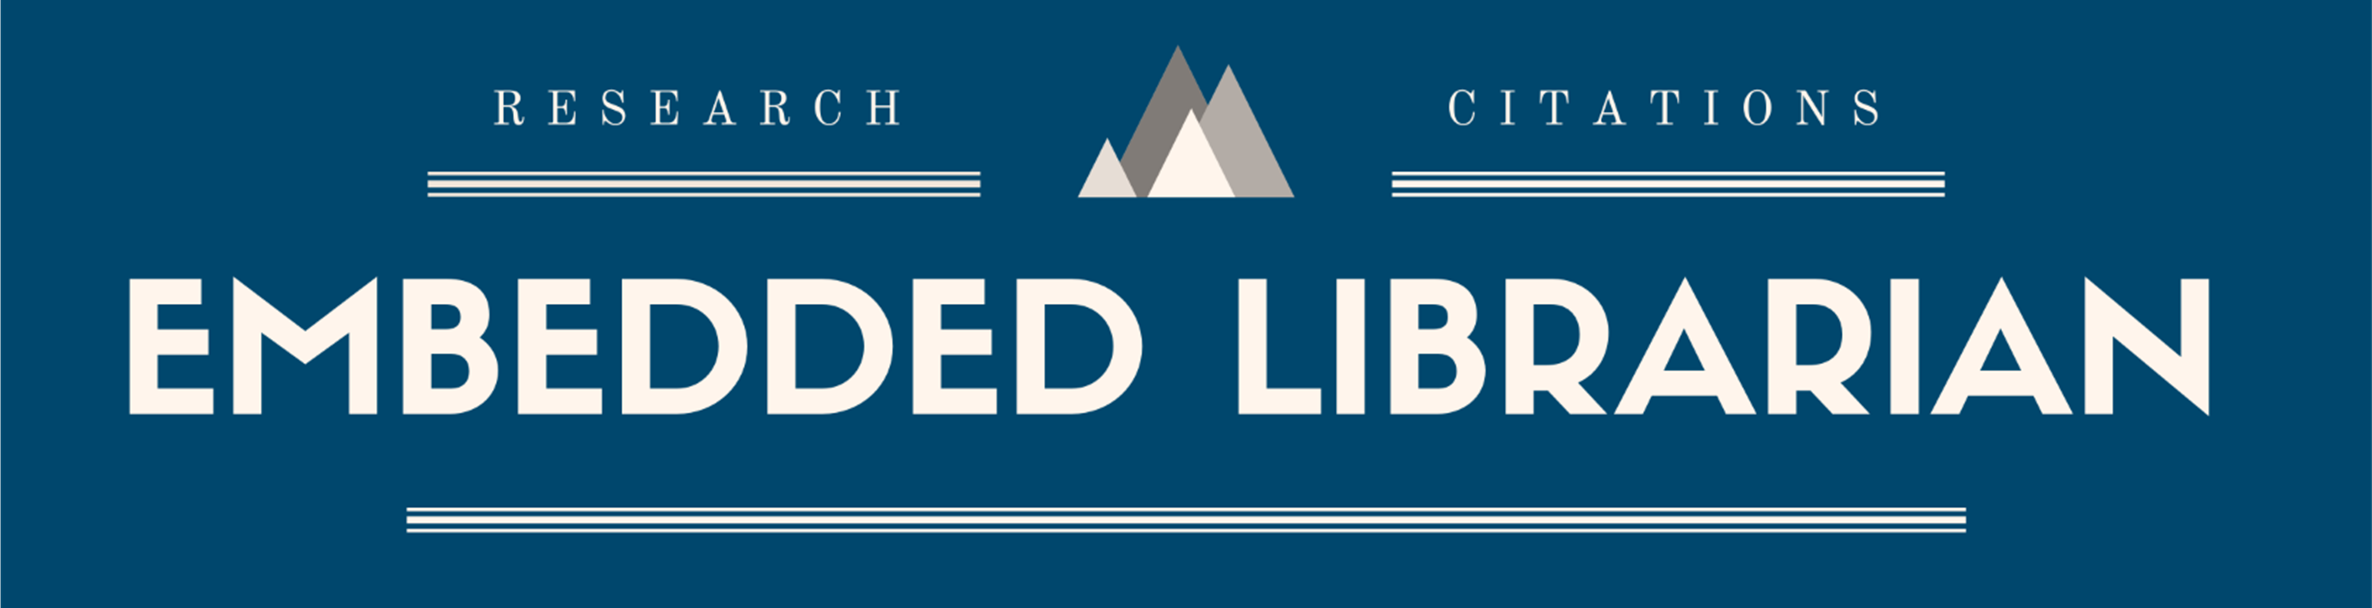 Research, Citations, Embedded Librarian